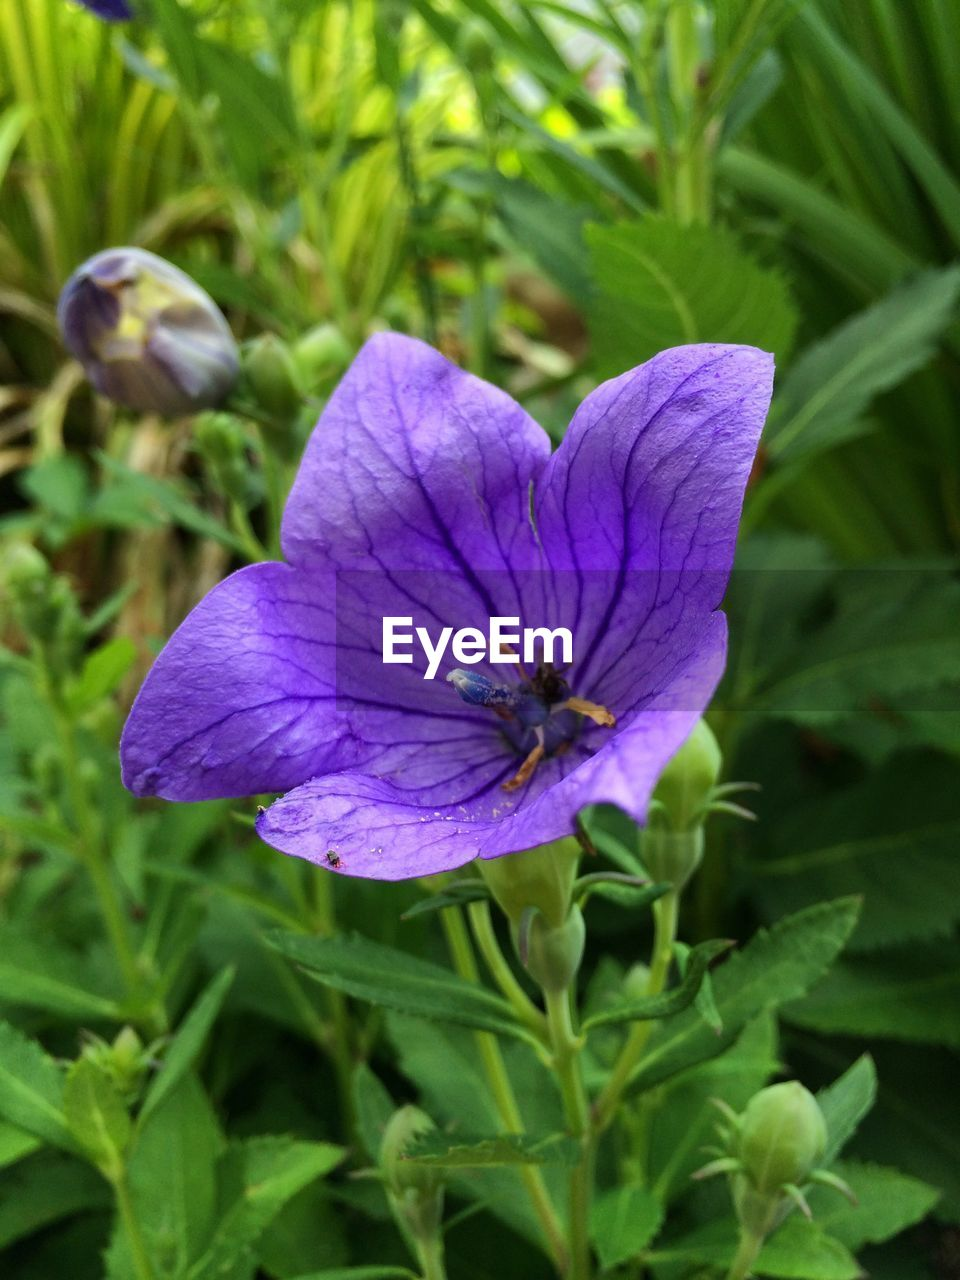 plant, flowering plant, flower, vulnerability, freshness, growth, beauty in nature, fragility, purple, petal, close-up, inflorescence, flower head, nature, no people, plant part, leaf, day, green color, outdoors, springtime